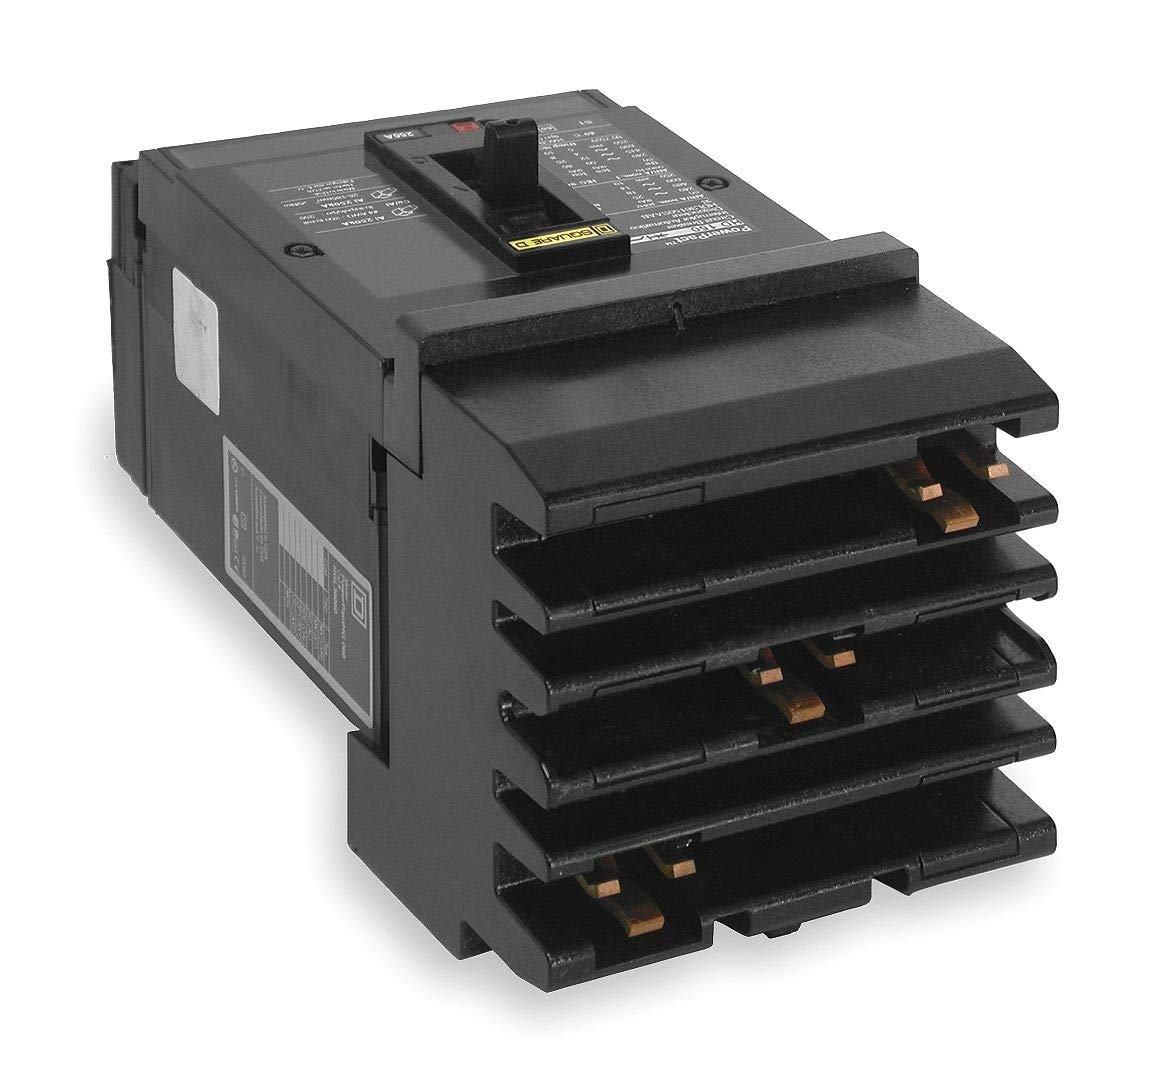 Square D Circuit Breaker, 30 Amps, Number of Poles: 3, 600VAC AC Voltage Rating - HGA36030 by Square D